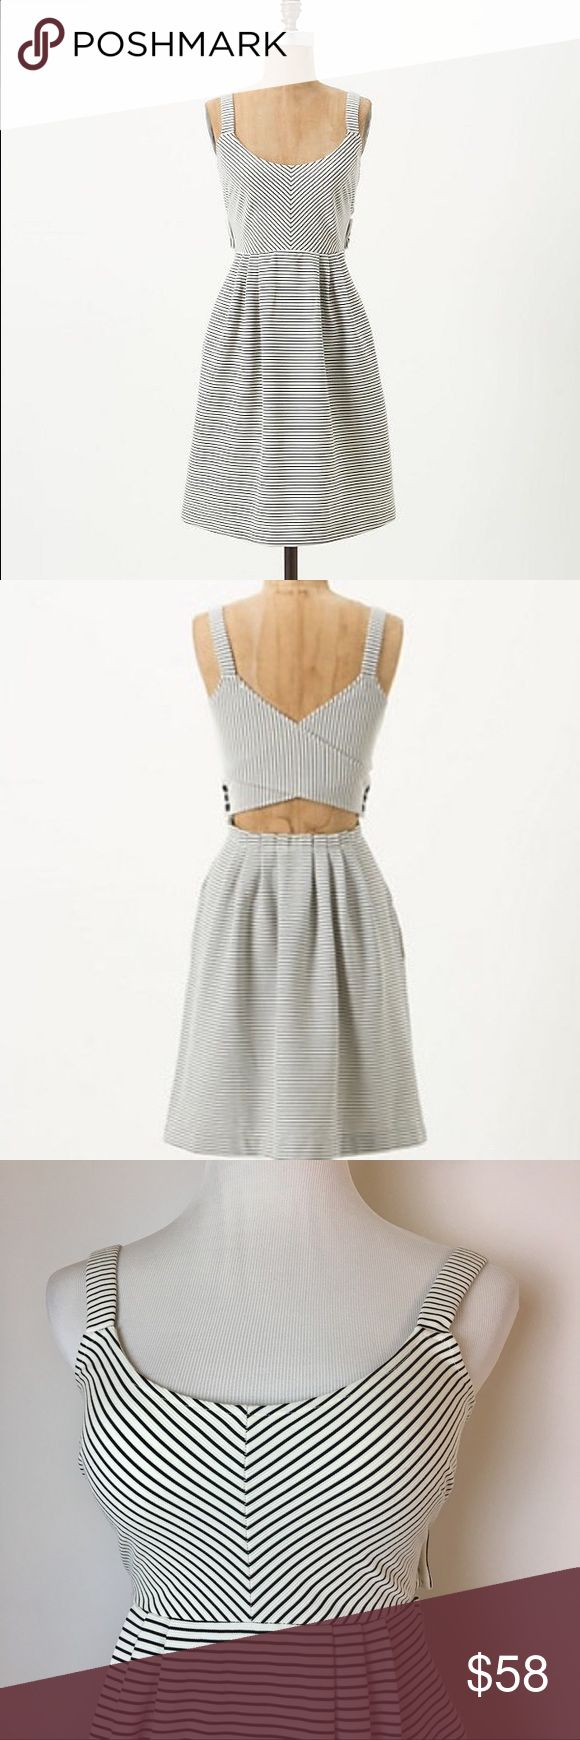 NWOT Postmark striped cross back dress Sweet textured jersey navy and white striped dress. Scoop neck. Wide crossed bands across the back that button on the sides and give a peek at your back. Side pockets and hidden zipper at the side of the skirt. The fabric is heavier weight so it holds its shape well. Perfect for hot summer days! Anthropologie Dresses